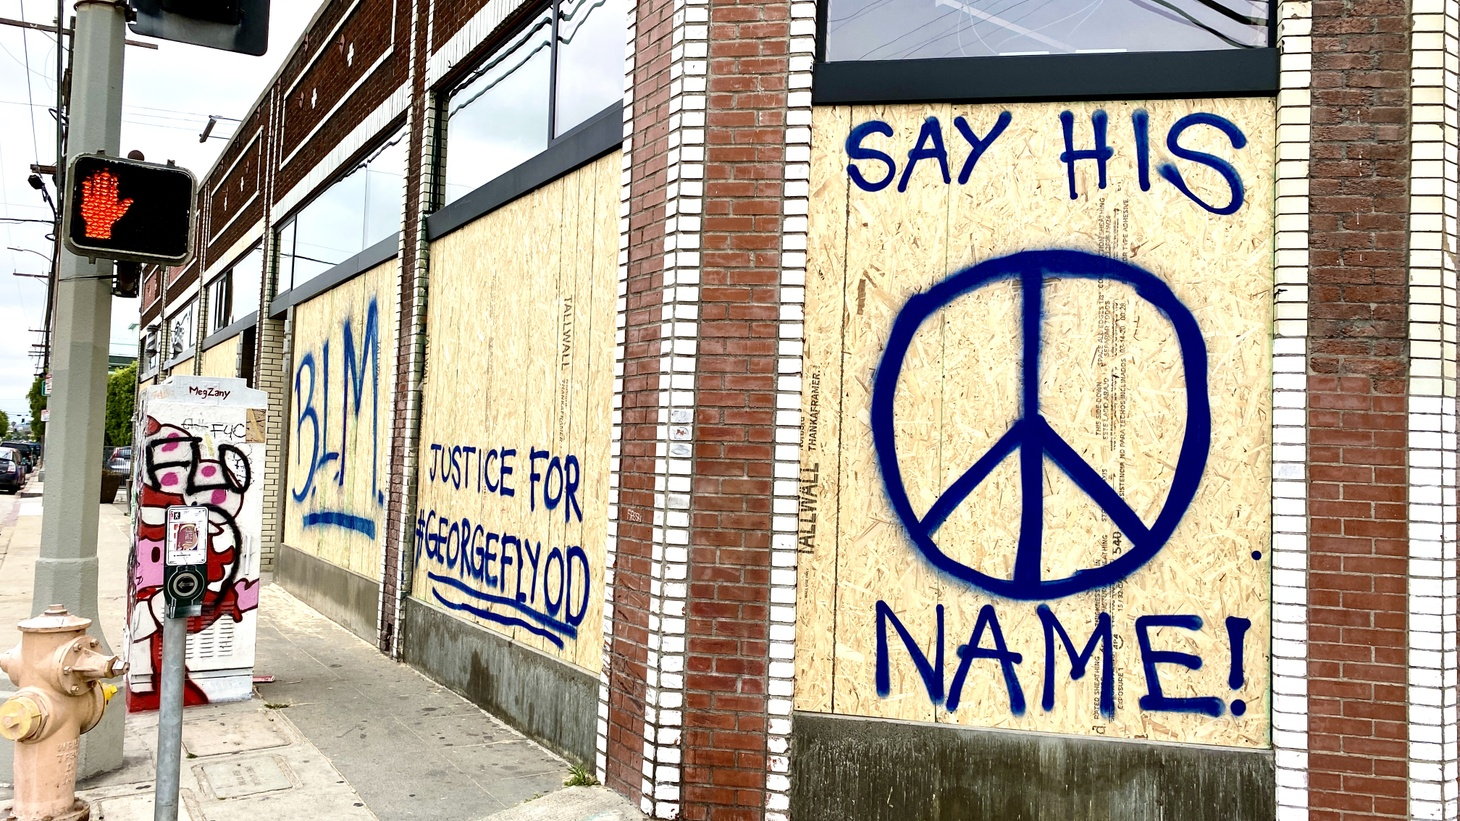 """Activists spray painted the words """"BLM,"""" """"Justice for #GeorgeFloyd,"""" and """"Say his name!"""" on a boarded-up business in Santa Monica. June 5, 2020."""